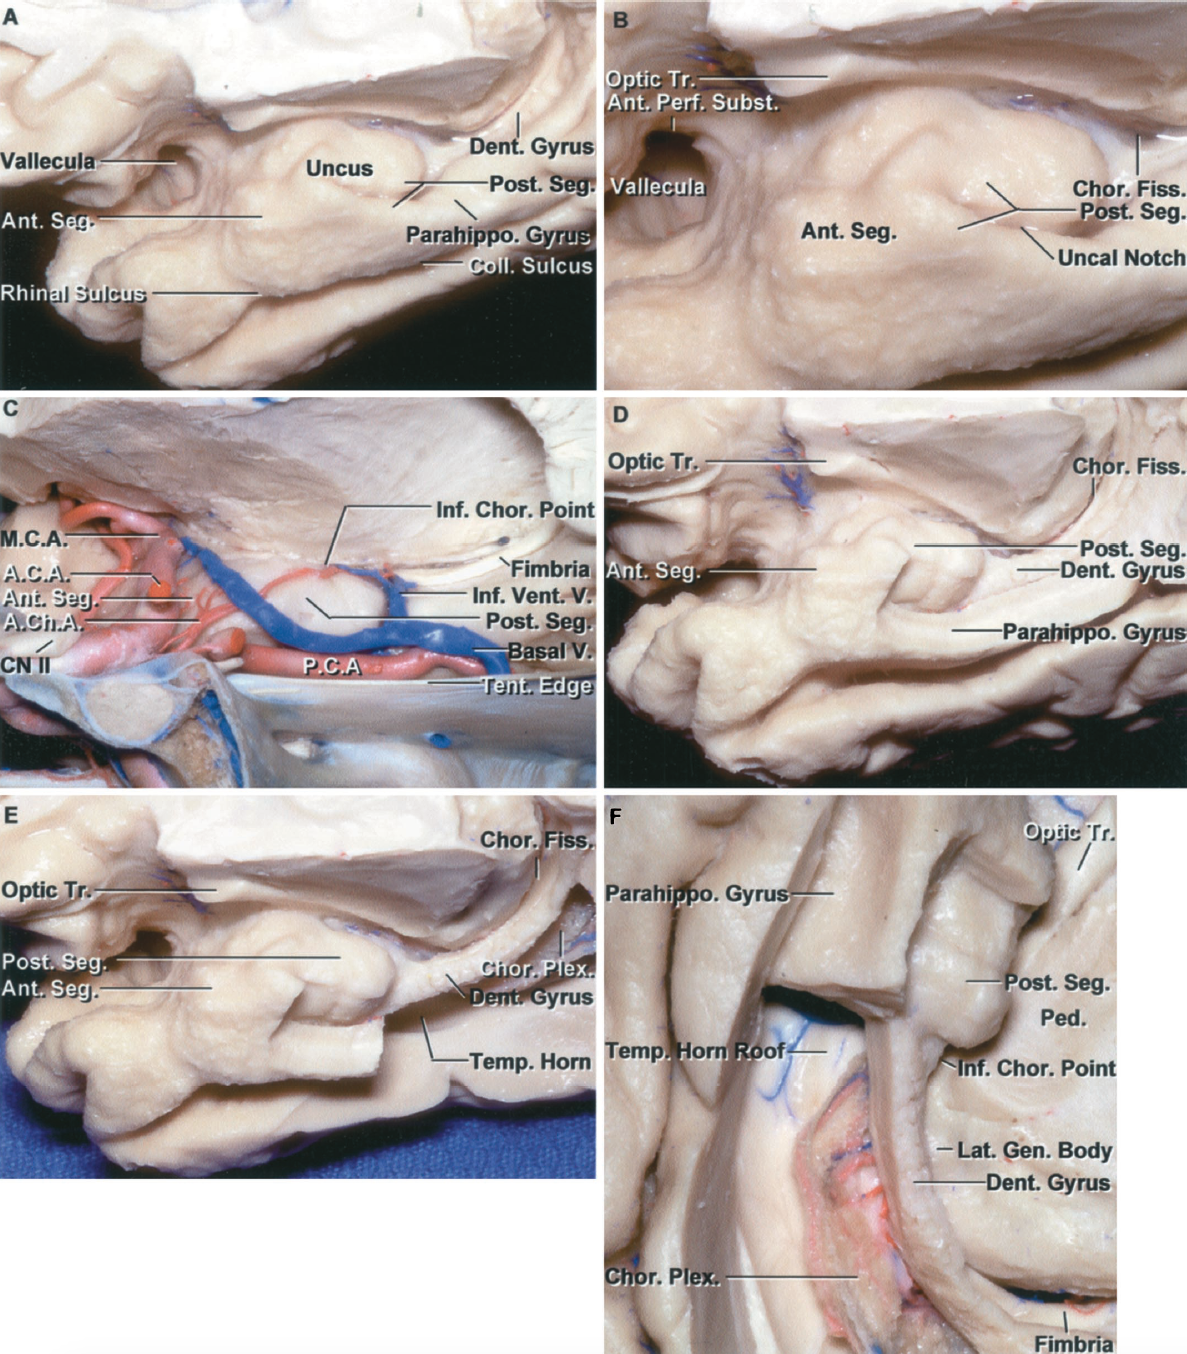 Figure 1.10. Medial surface of the temporal lobe and uncus. A, the uncus, a medial projection at the anterior end of the parahippocampal gyrus, has an anterior and posterior segment. The sylvian vallecula is the site where the middle cerebral artery exits the carotid cistern to enter the sylvian cistern. The collateral sulcus extends along the lateral margin of the parahippocampal gyrus, and the rhinal sulcus extends along the lateral edge of the uncus. The rhinal and collateral sulci are frequently not continuous, although they are in this case. B, enlarged view. The posterior segment of the uncus is divided by the uncal notch into an upper and lower part. The lower part is formed by the parahippocampal gyrus and the upper part is formed predominantly by the hippocampal head. The dentate gyrus, at its anterior margin, blends into the upper part of the posterior segment. C, medial view of the uncus directed across the sella and tentorial edge. The carotid artery and middle cerebral artery face the anterior segment of the uncus. The posterior cerebral artery courses along the medial side of the posterior segment. The anterior choroidal artery ascends as it passes backward across the anterior segment to reach the upper part of the posterior segment. The anterior choroidal artery enters, and the inferior ventricular vein exits, the choroidal fissure by passing through the inferior choroidal point located just behind the head of the hippocampus and the posterior uncal segment. The inferior ventricular vein drains the roof of the temporal horn and empties in the basal vein. D, the medial part of the parahippocampal gyrus and the lower part of the posterior uncal segment have been removed to expose the dentate gyrus and the choroidal fissure. The beaded dentate gyrus blends into the posterior edge of the upper part of the posterior uncal segment and the medial side of the hippocampal head. E, additional parahippocampal gyrus has been removed while preserving the dentate gyrus to expose the choroid plexus in the temporal horn. The amygdala, partially enclosed in the anterior segment, forms the anterior wall of the temporal horn. F, inferior view of E. The part of the parahippocampal gyrus, lateral to the dentate gyrus, has been removed to expose the roof of the temporal horn, which is formed by the tapetum, the thin layer of fibers from the corpus callosum that separate the optic radiation from the wall of the temporal horn. The dentate gyrus and fimbria have been preserved. The choroid plexus is attached along the choroidal fissure located between the fimbria and lower margin of the thalamus. The inferior choroidal point at the lower end of the choroidal fissure is located behind the posterior uncal segment and the hippocampal head. The dentate gyrus and fimbria extend along the lateral edge of the lateral geniculate body. A.C.A., anterior cerebral artery; A.Ch.A., anterior choroidal artery; Ant., anterior; Chor., choroid, choroidal; CN, cranial nerve; Coll., collateral; Dent., dentate; Fiss., fissure; Gen., geniculate; Inf., inferior; Lat., lateral; M.C.A., medial cerebral artery; P.C.A., posterior cerebral artery; Parahippo., parahippocampal; Ped., peduncle; Perf., perforated; Plex., plexus; Post., posterior; Seg., segment; Subst., substance; Temp., temporal; Tent., tentorial; Tr., tract; V., vein; Vent., ventricular.